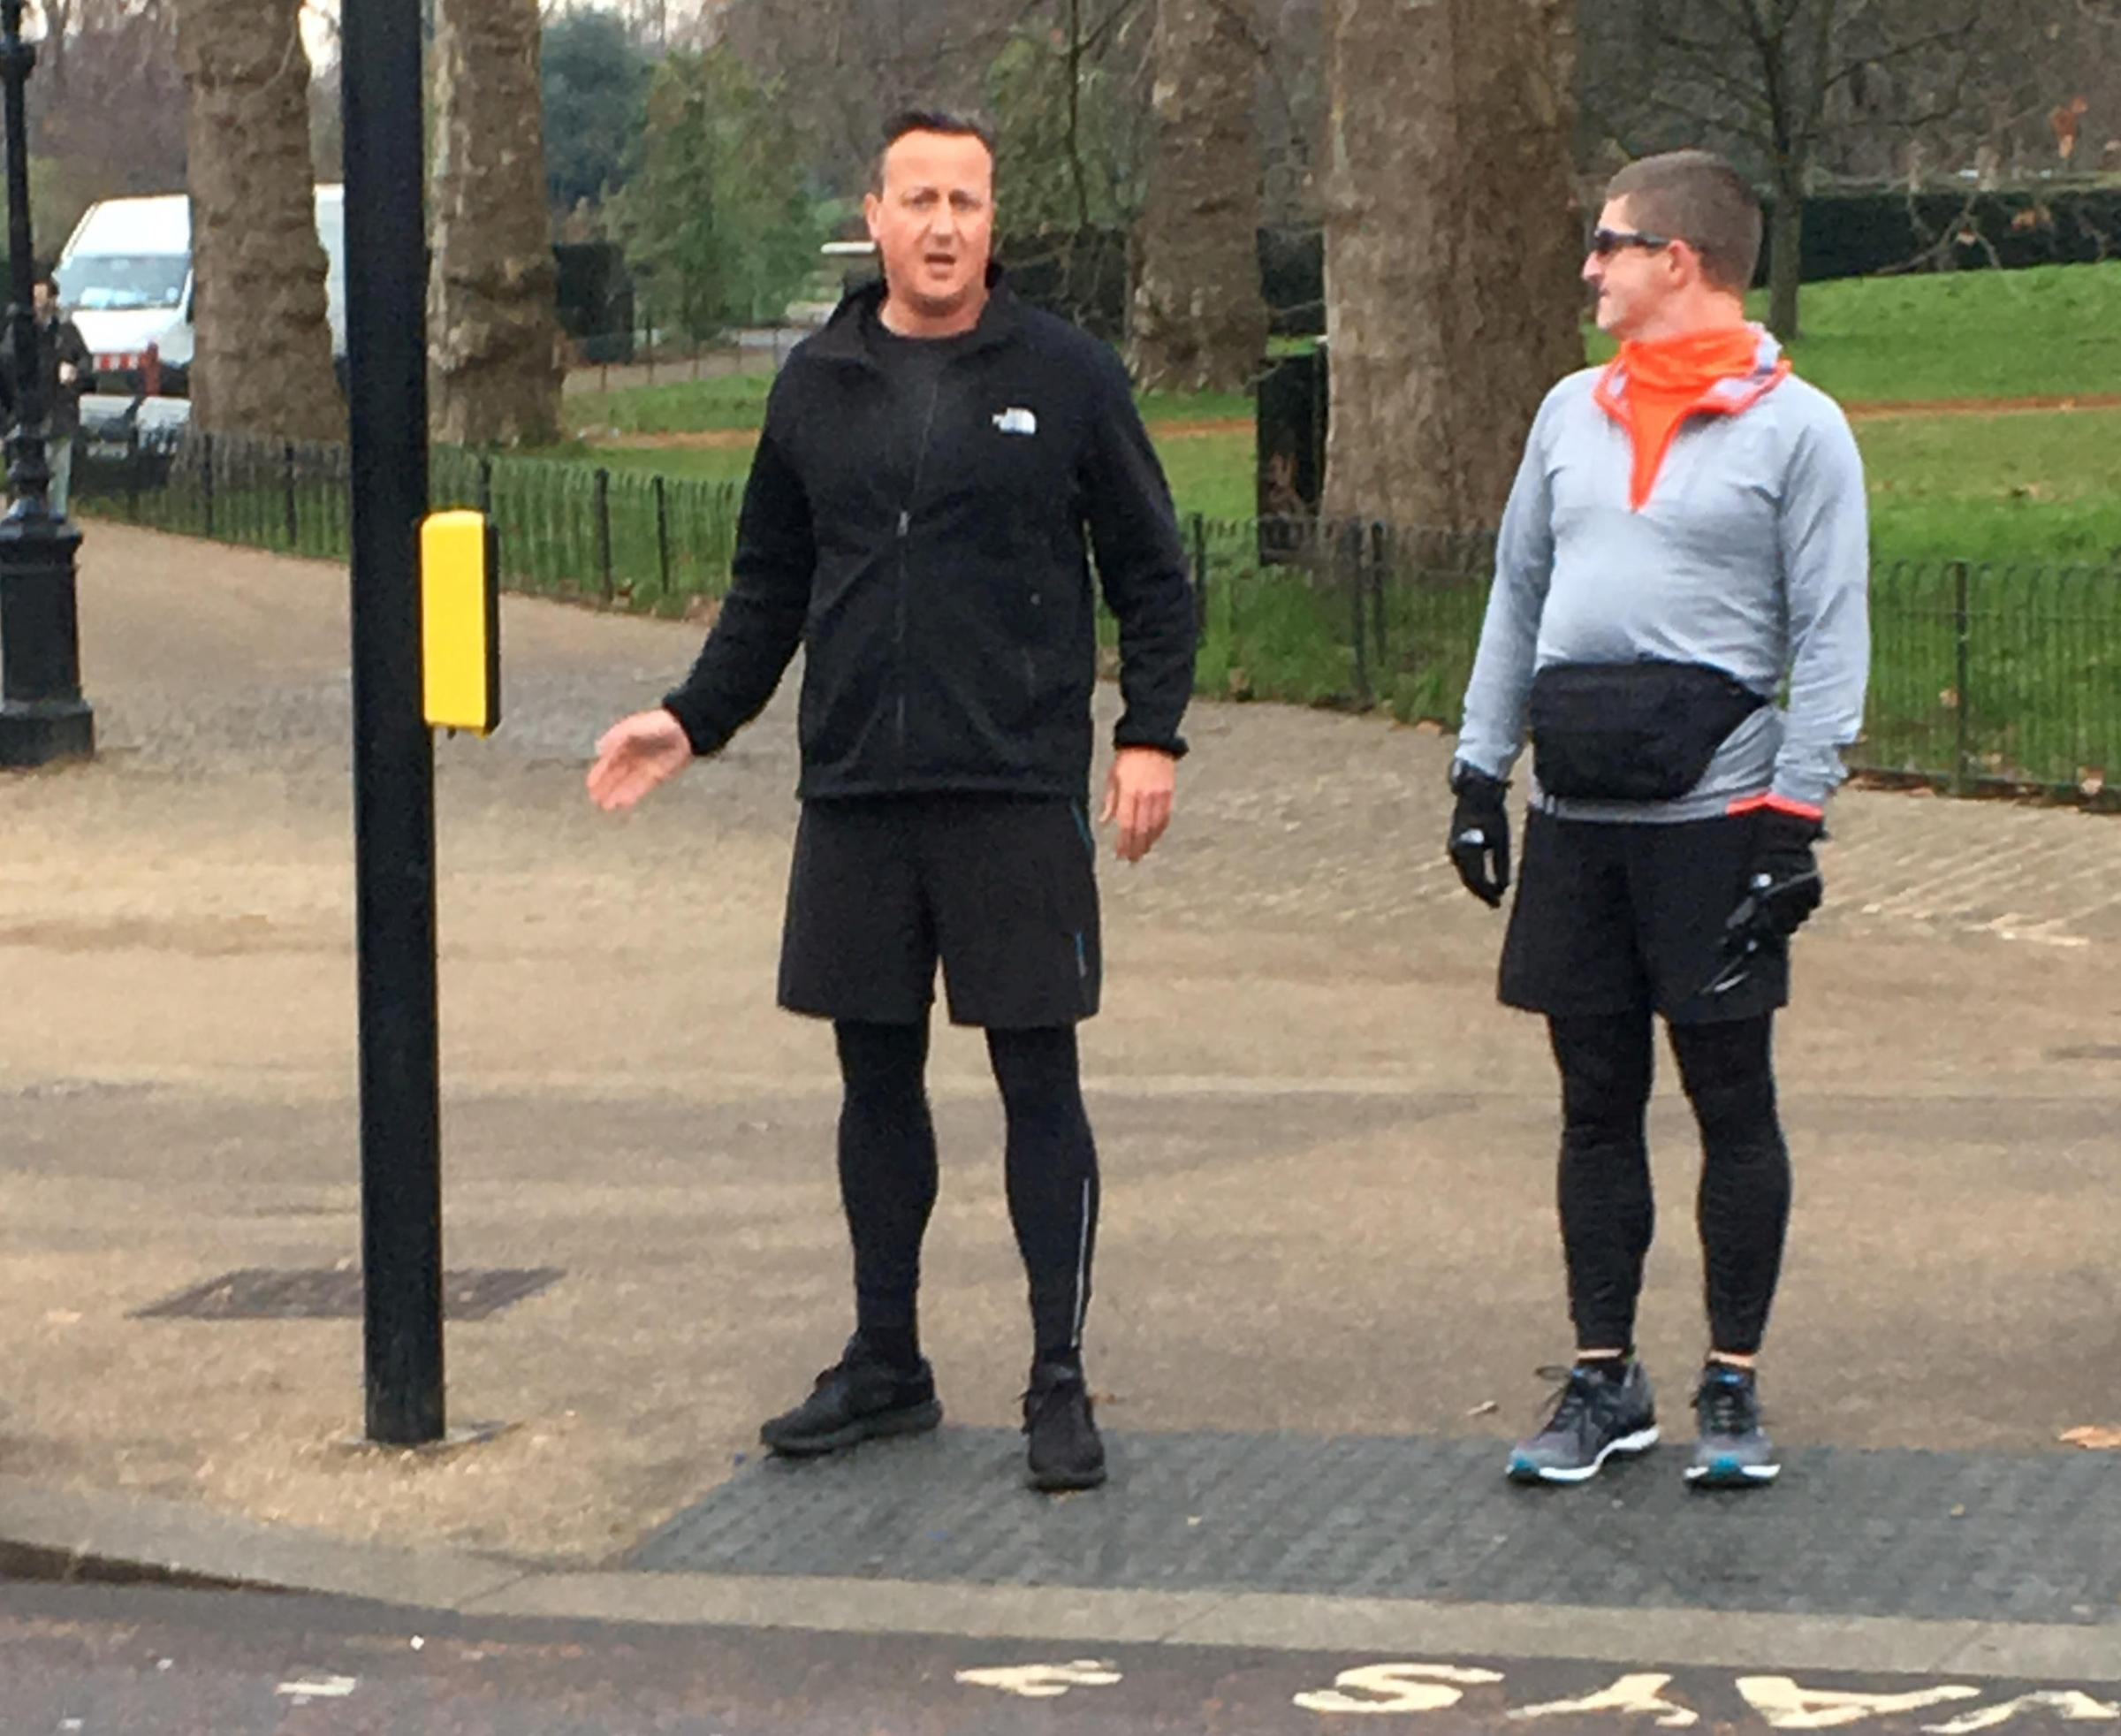 David Cameron spotted out on a jog in London (Photo: SWNS)